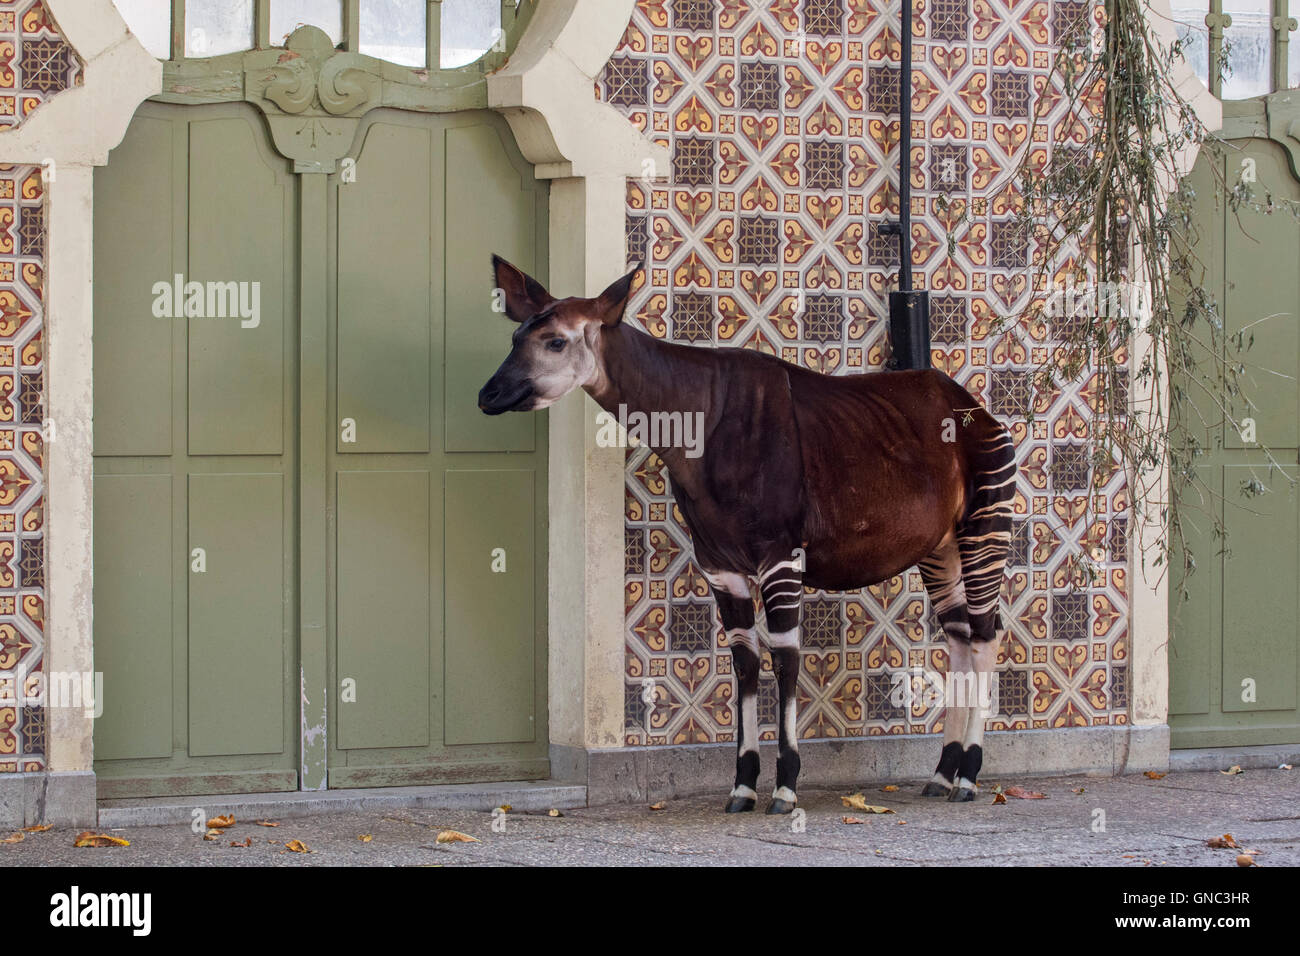 Okapi (Okapia johnstoni) native to the Congo in Central Africa in the Antwerp Zoo, Belgium - Stock Image